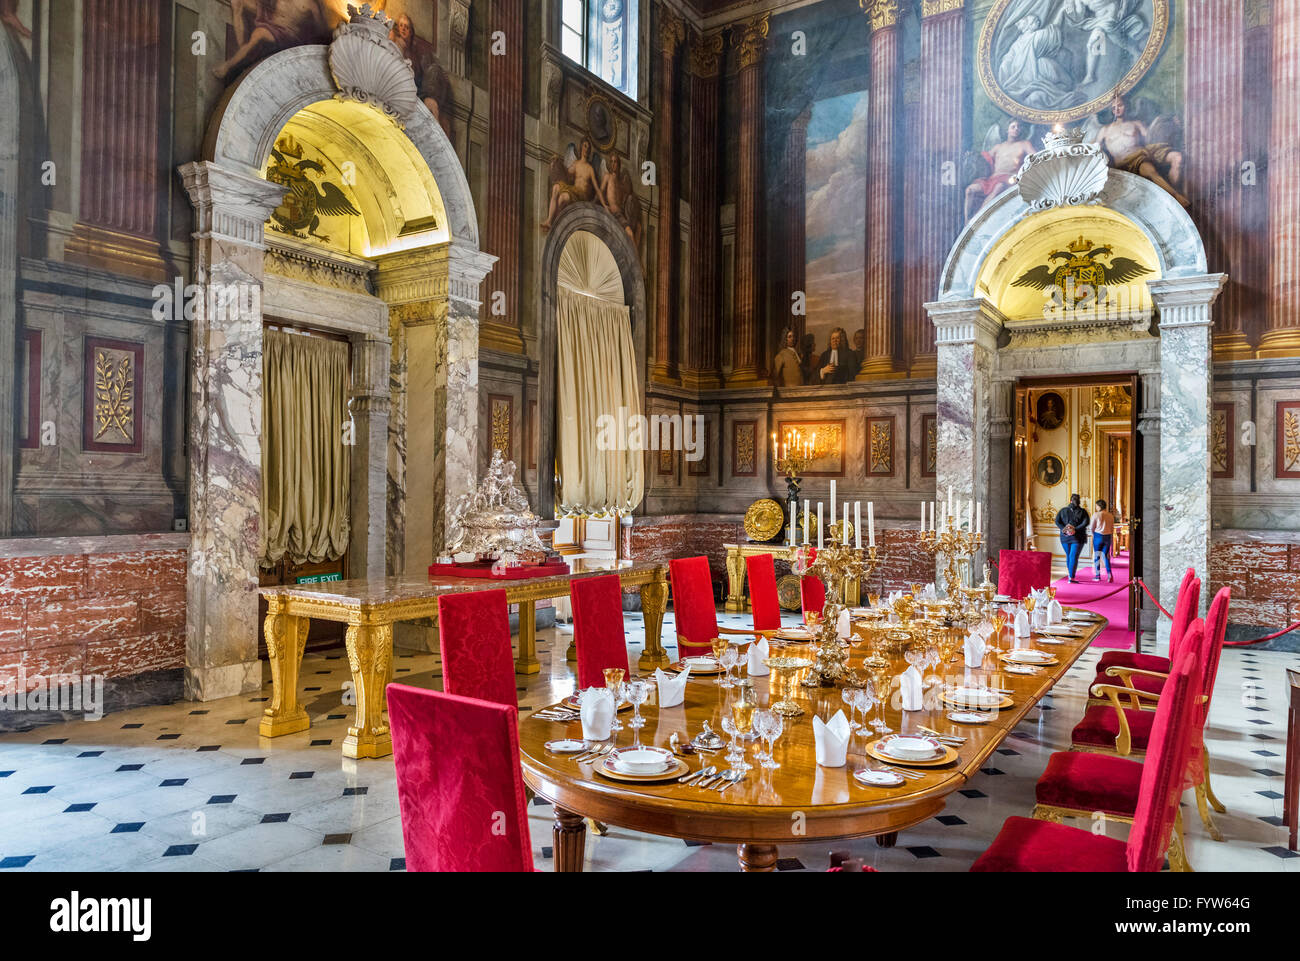 Dining Room, Blenheim Palace, seat of the Dukes of Marlborough and birthplace of Winston Churchill, Woodstock, Oxfordshire, - Stock Image